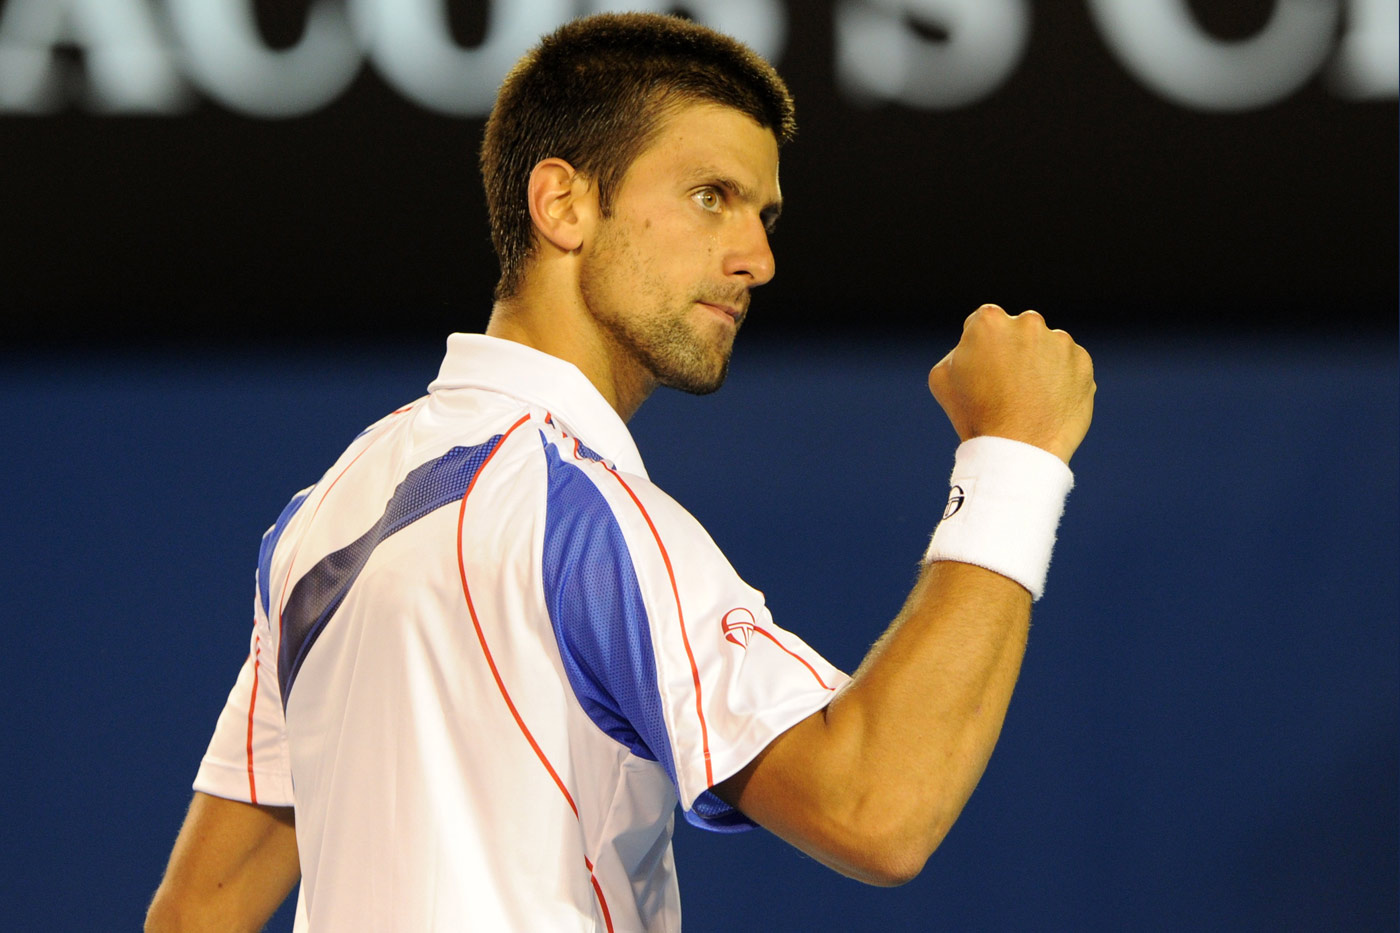 djokovic - photo #18